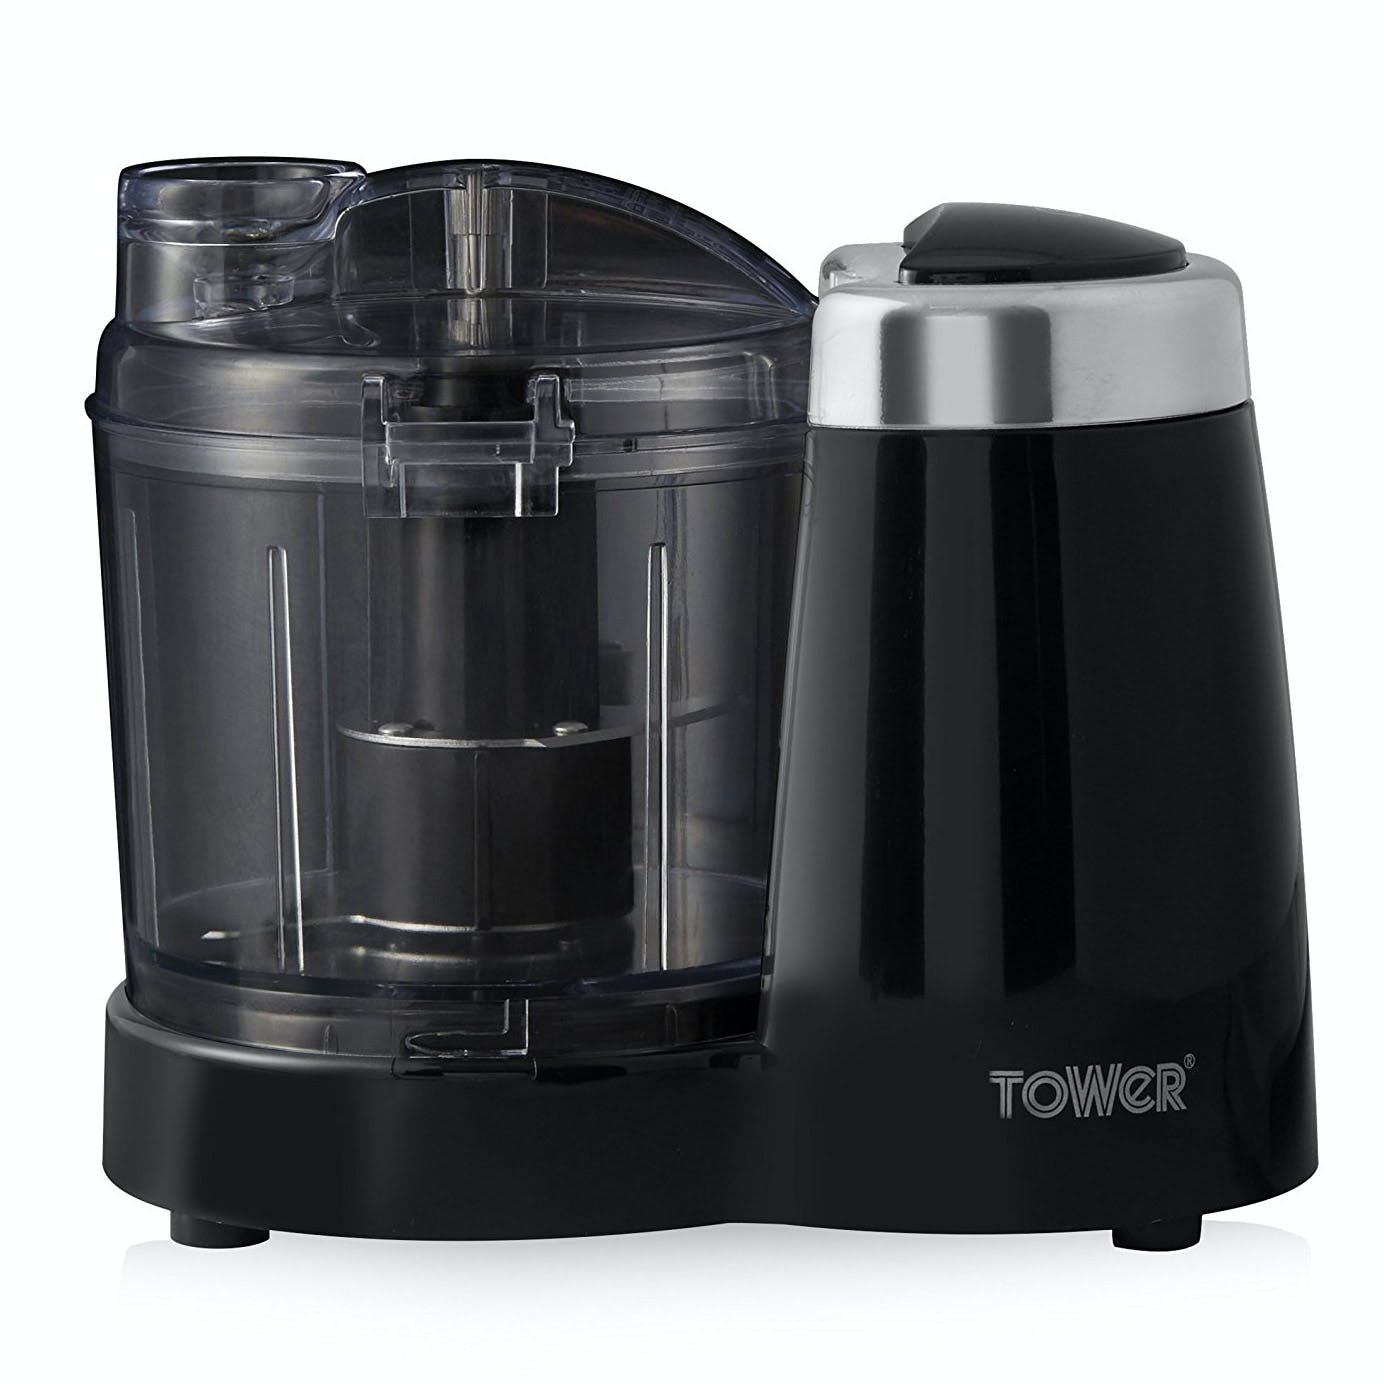 Tower T12030